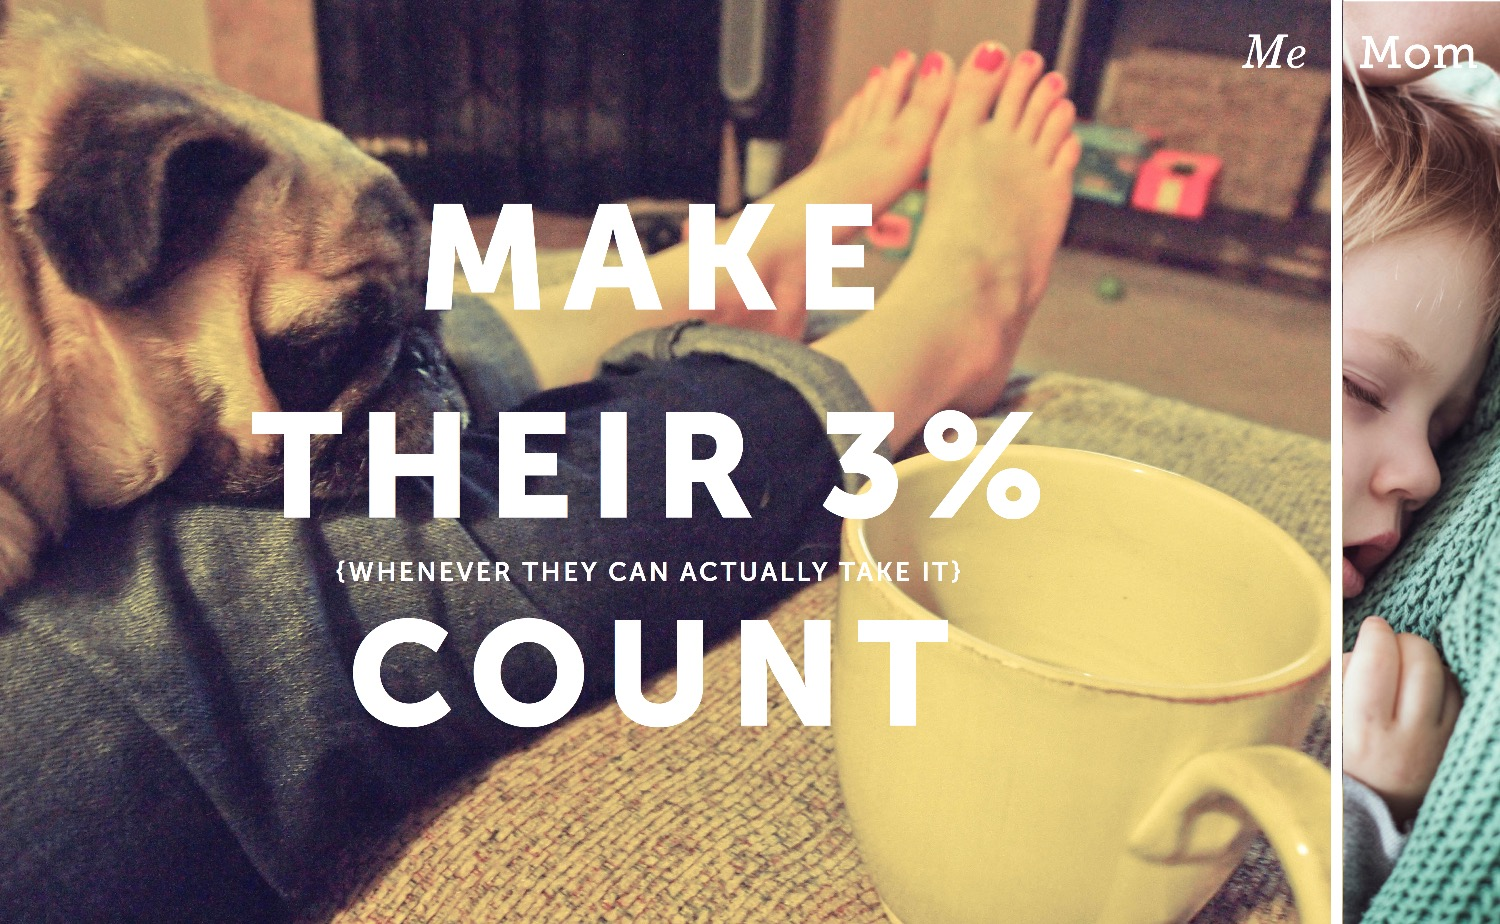 Make moms' 3% count